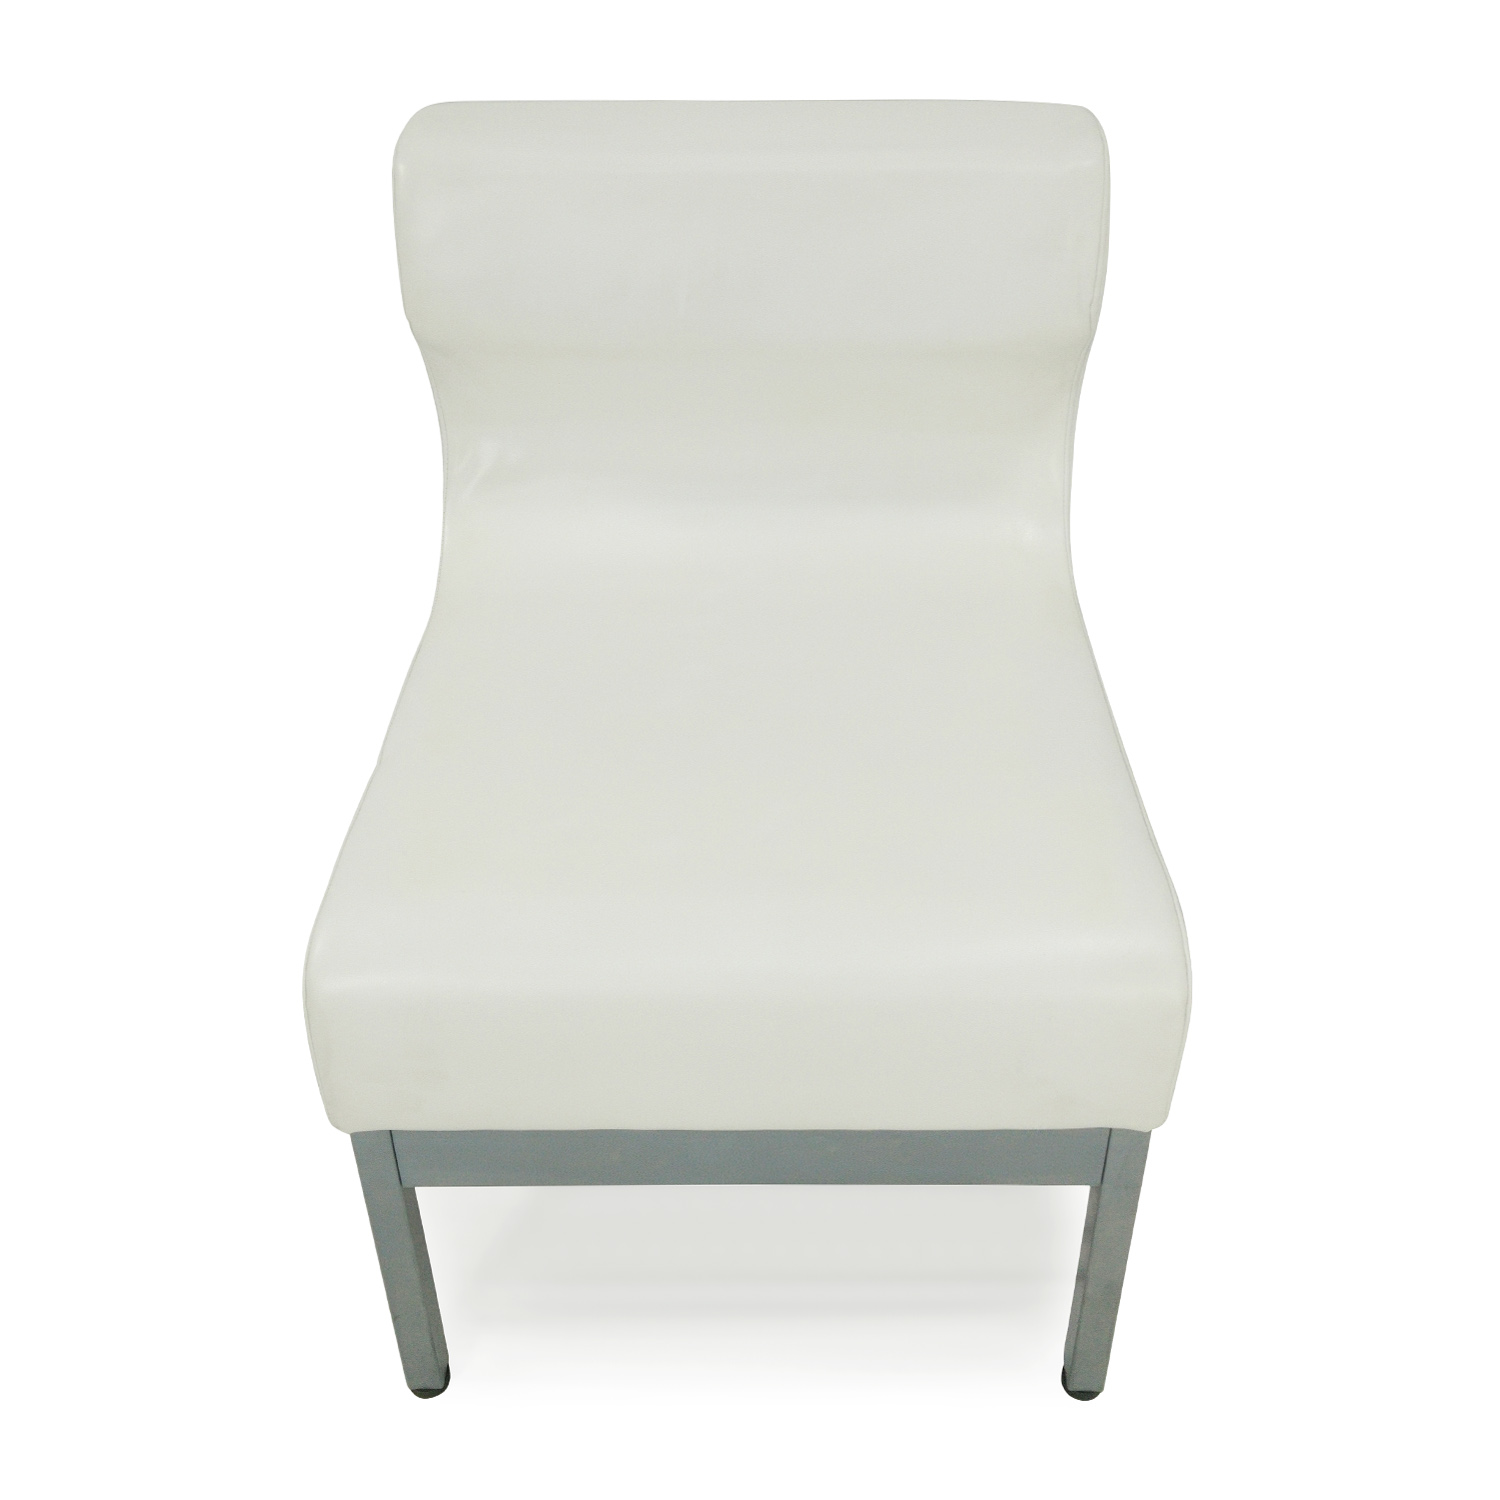 Zuo Modern Contemporary Zuo Modern Chair second hand